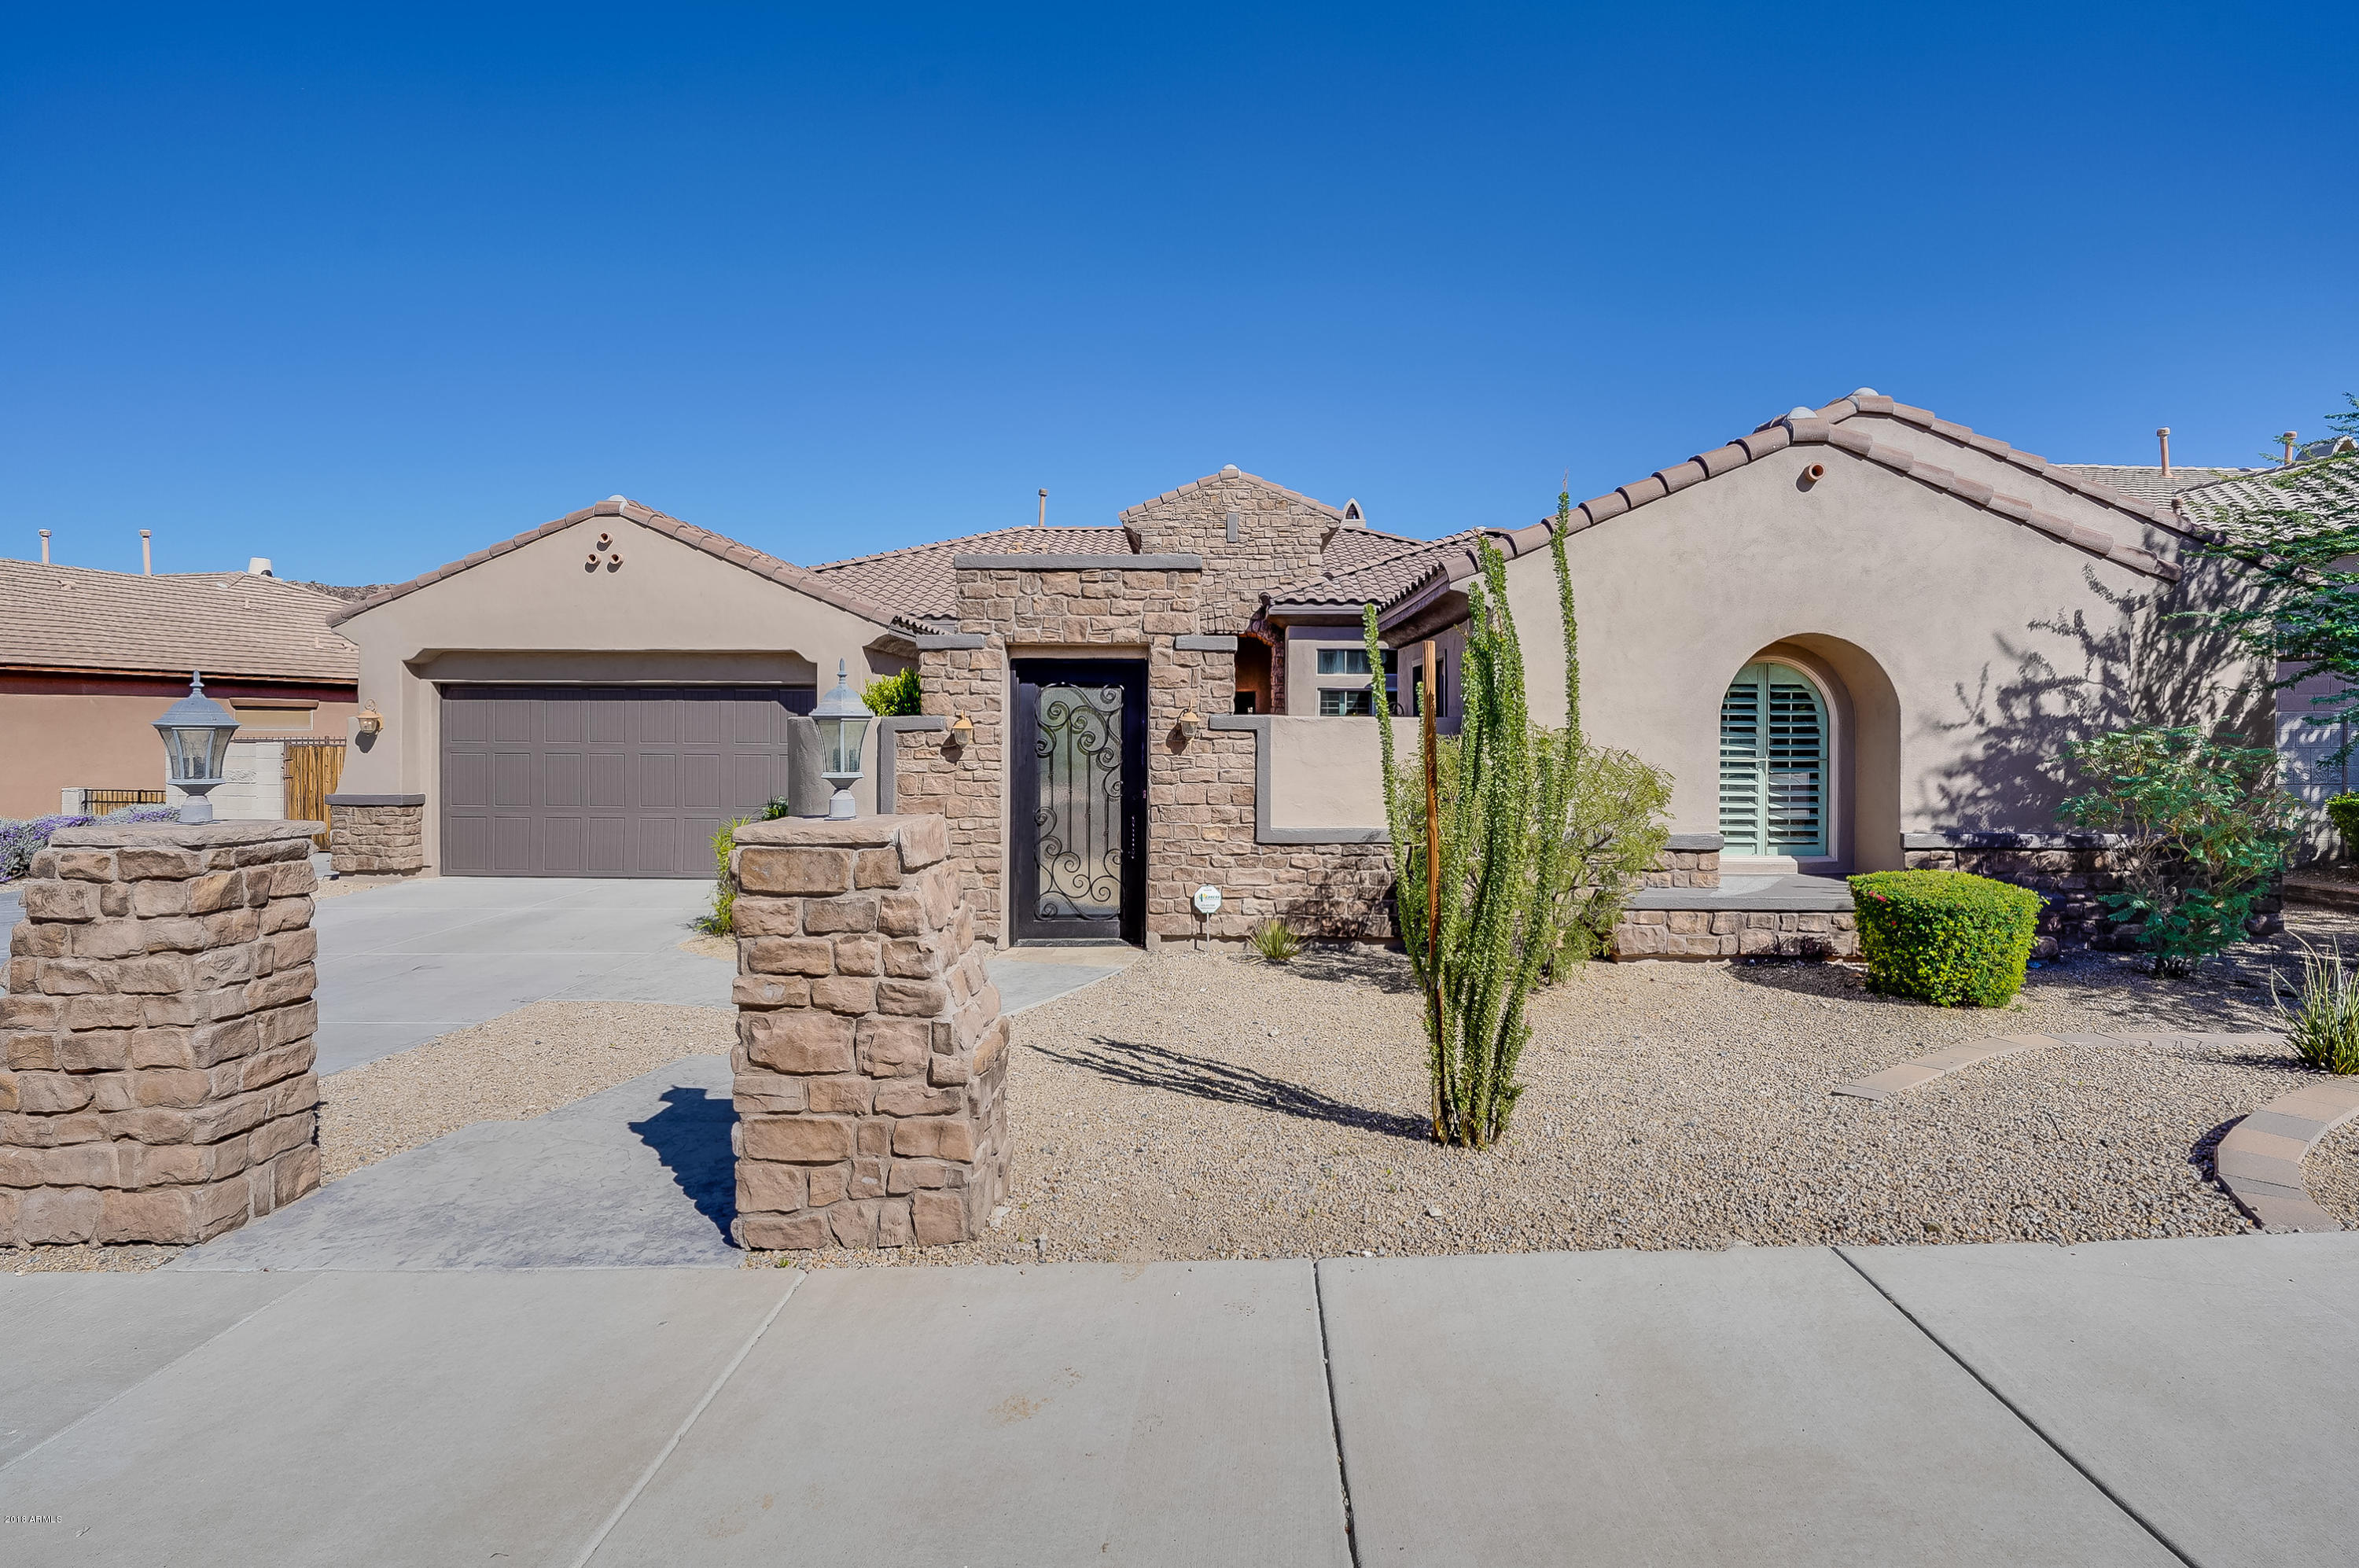 26889 N 90TH Avenue, Peoria, Arizona